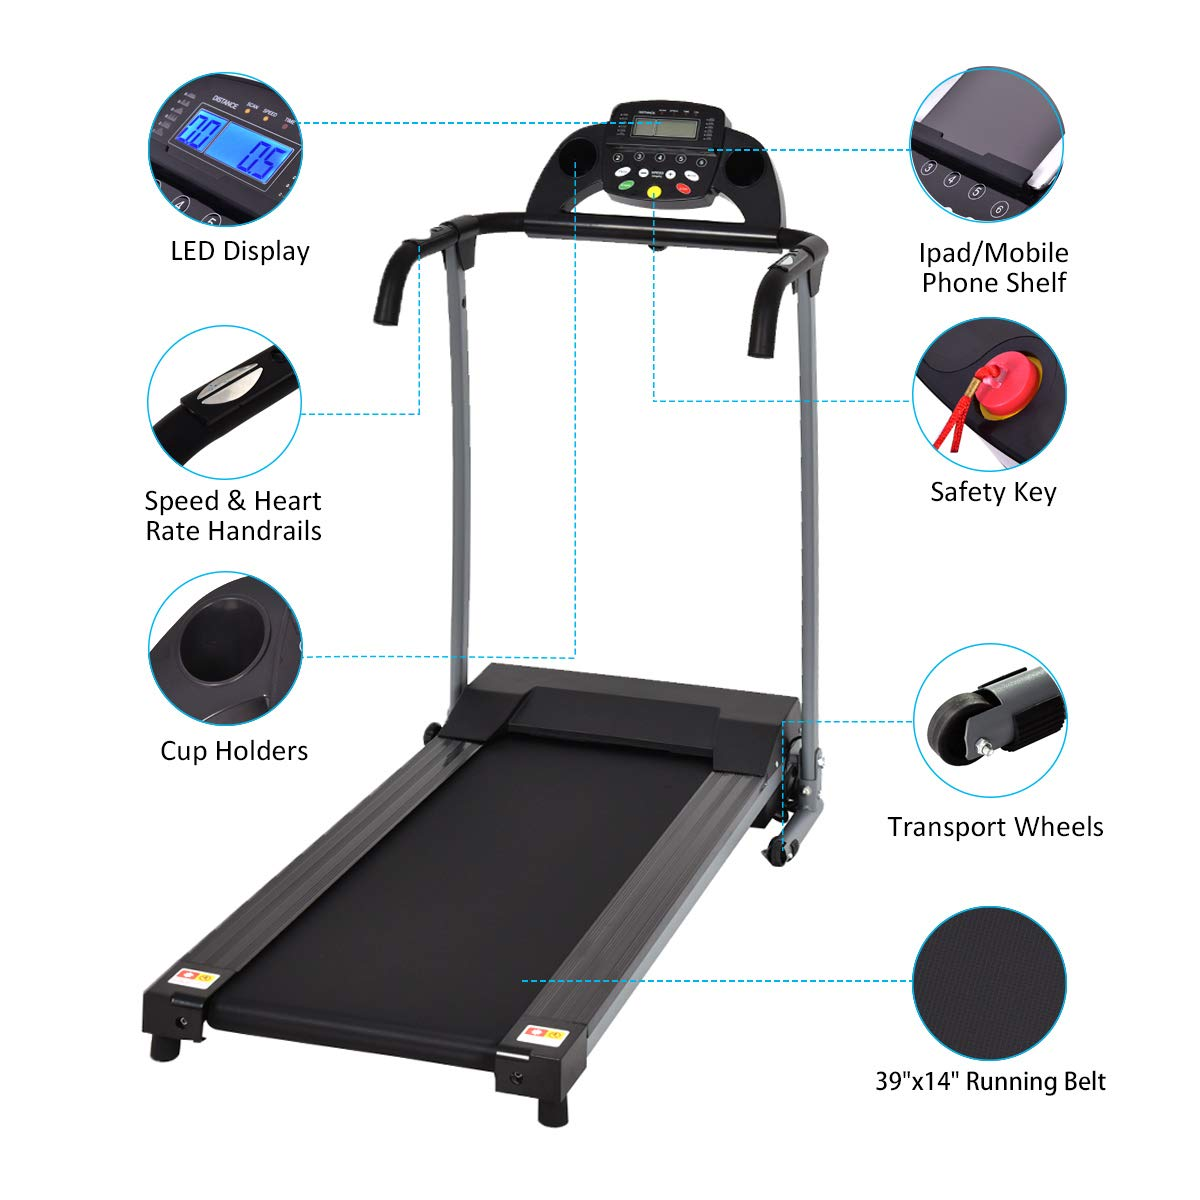 Goplus 800W Folding Treadmill Electric Motorized Power Fitness Running Machine with LED Display and Mobile Phone Holder Perfect for Home Use (Black) by Goplus (Image #3)